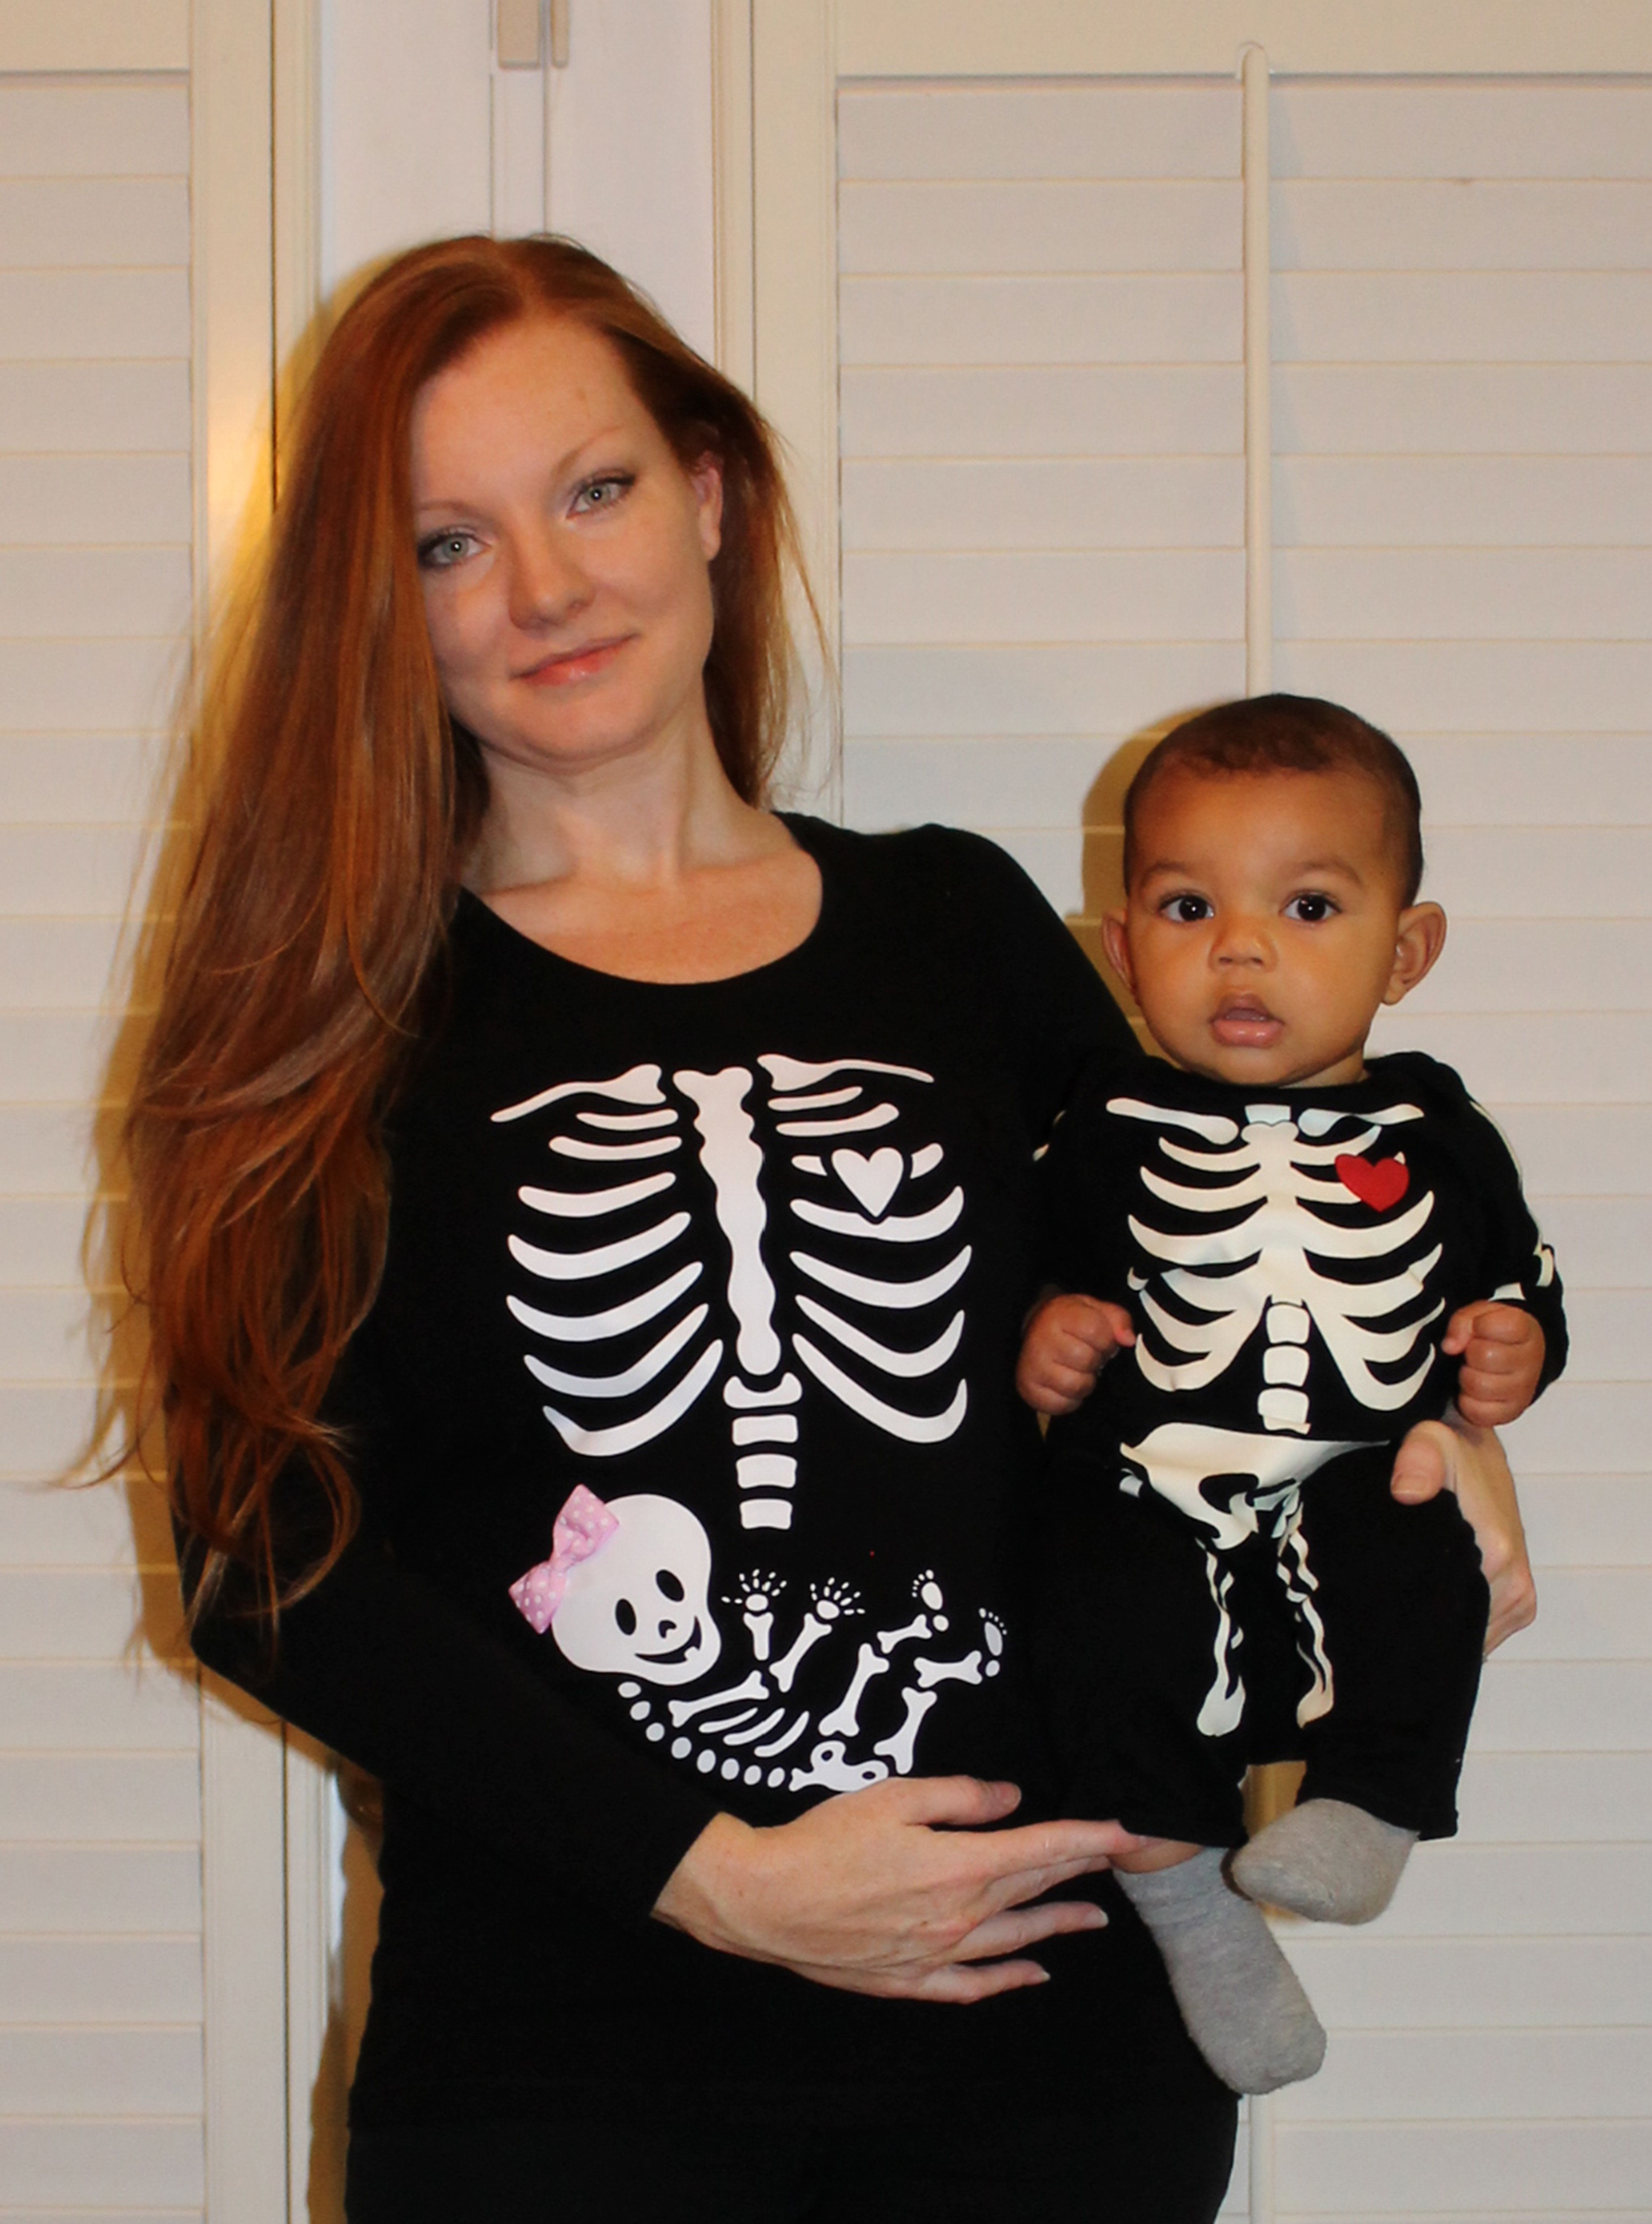 sc 1 st  HuffPost & 33 Creative Halloween Costumes Just For Pregnant Women | HuffPost